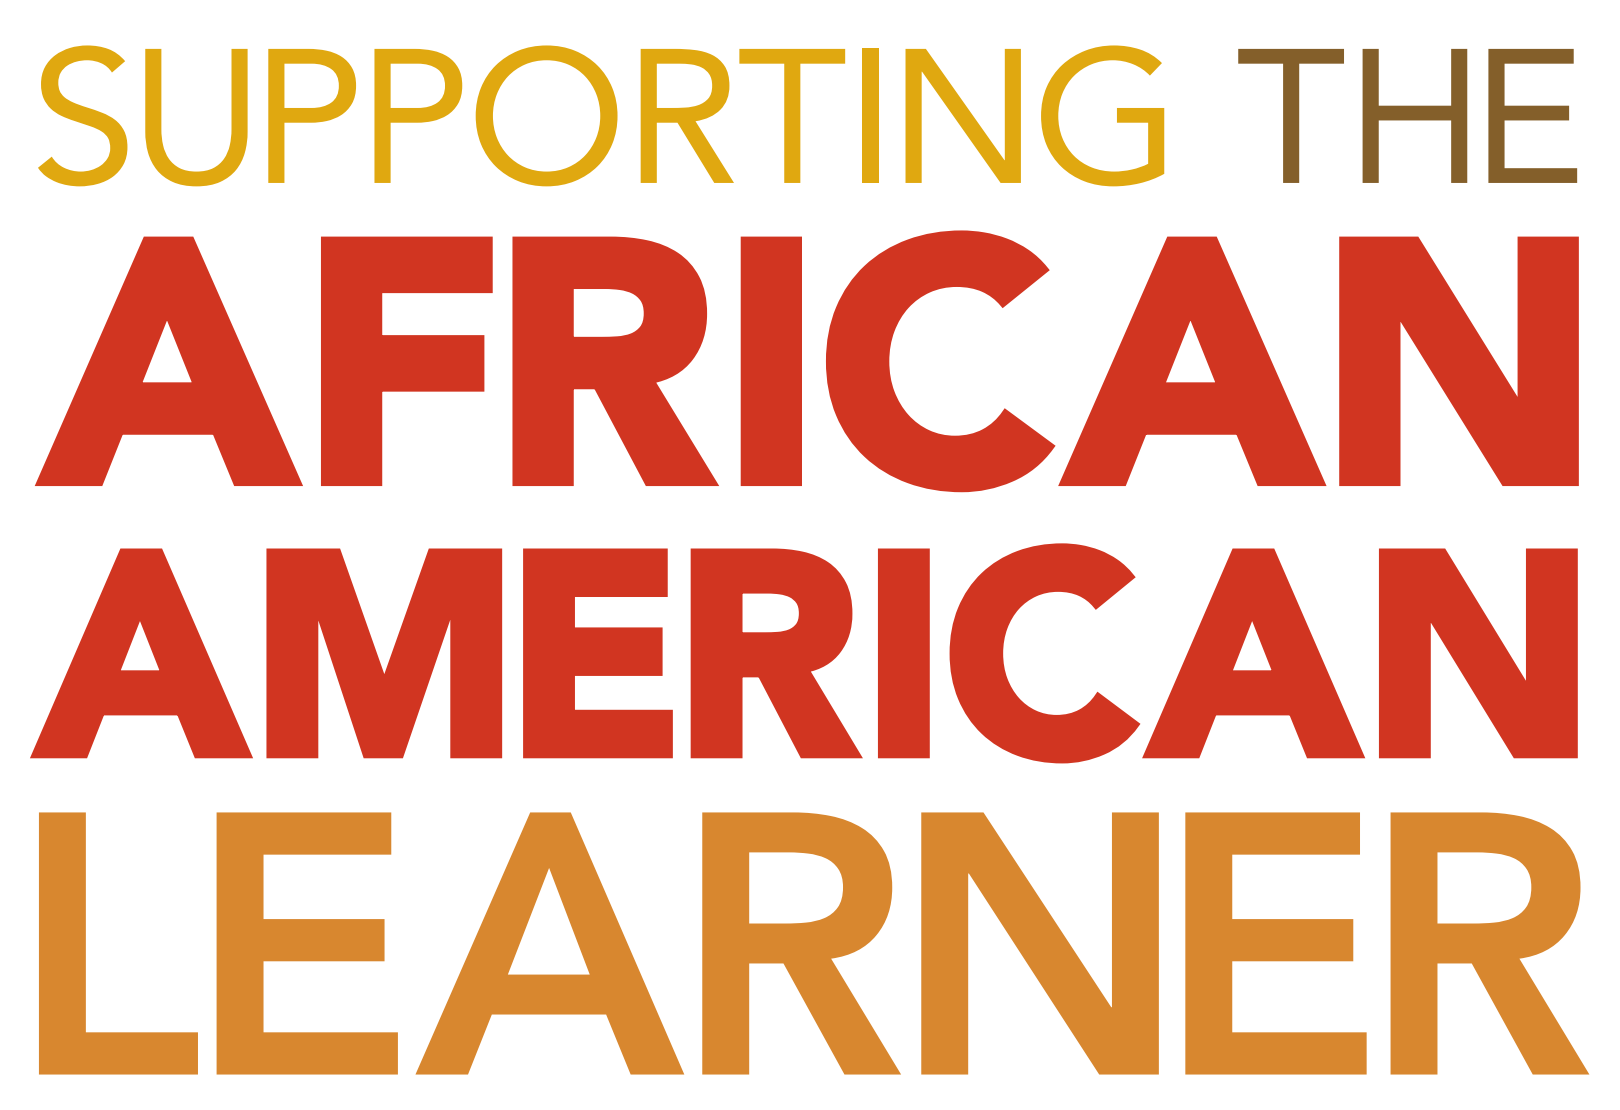 Supporting the African American Learner